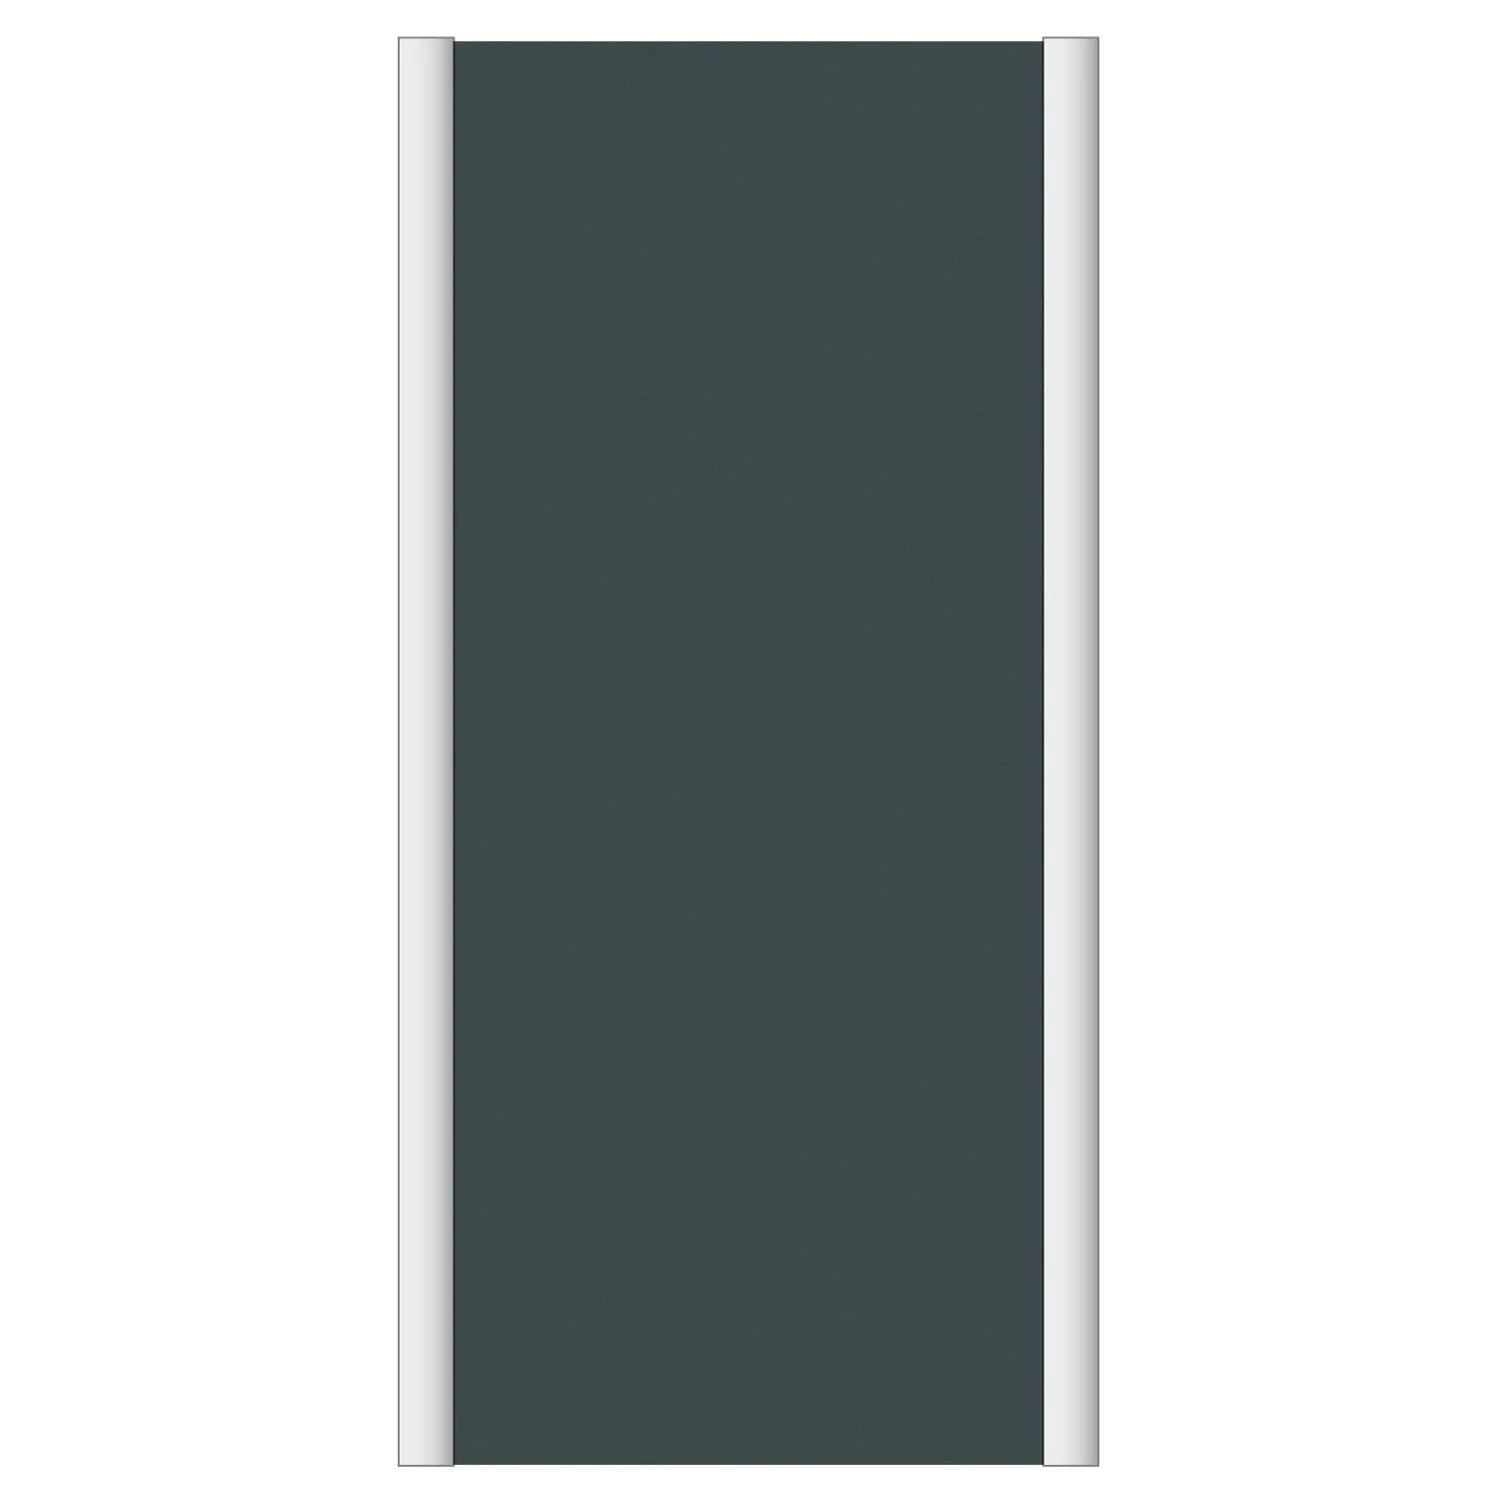 Porte Placard Leroy Merlin Spaceo Porte De Placard Coulissante Gris Graphite Spaceo L 67 X H